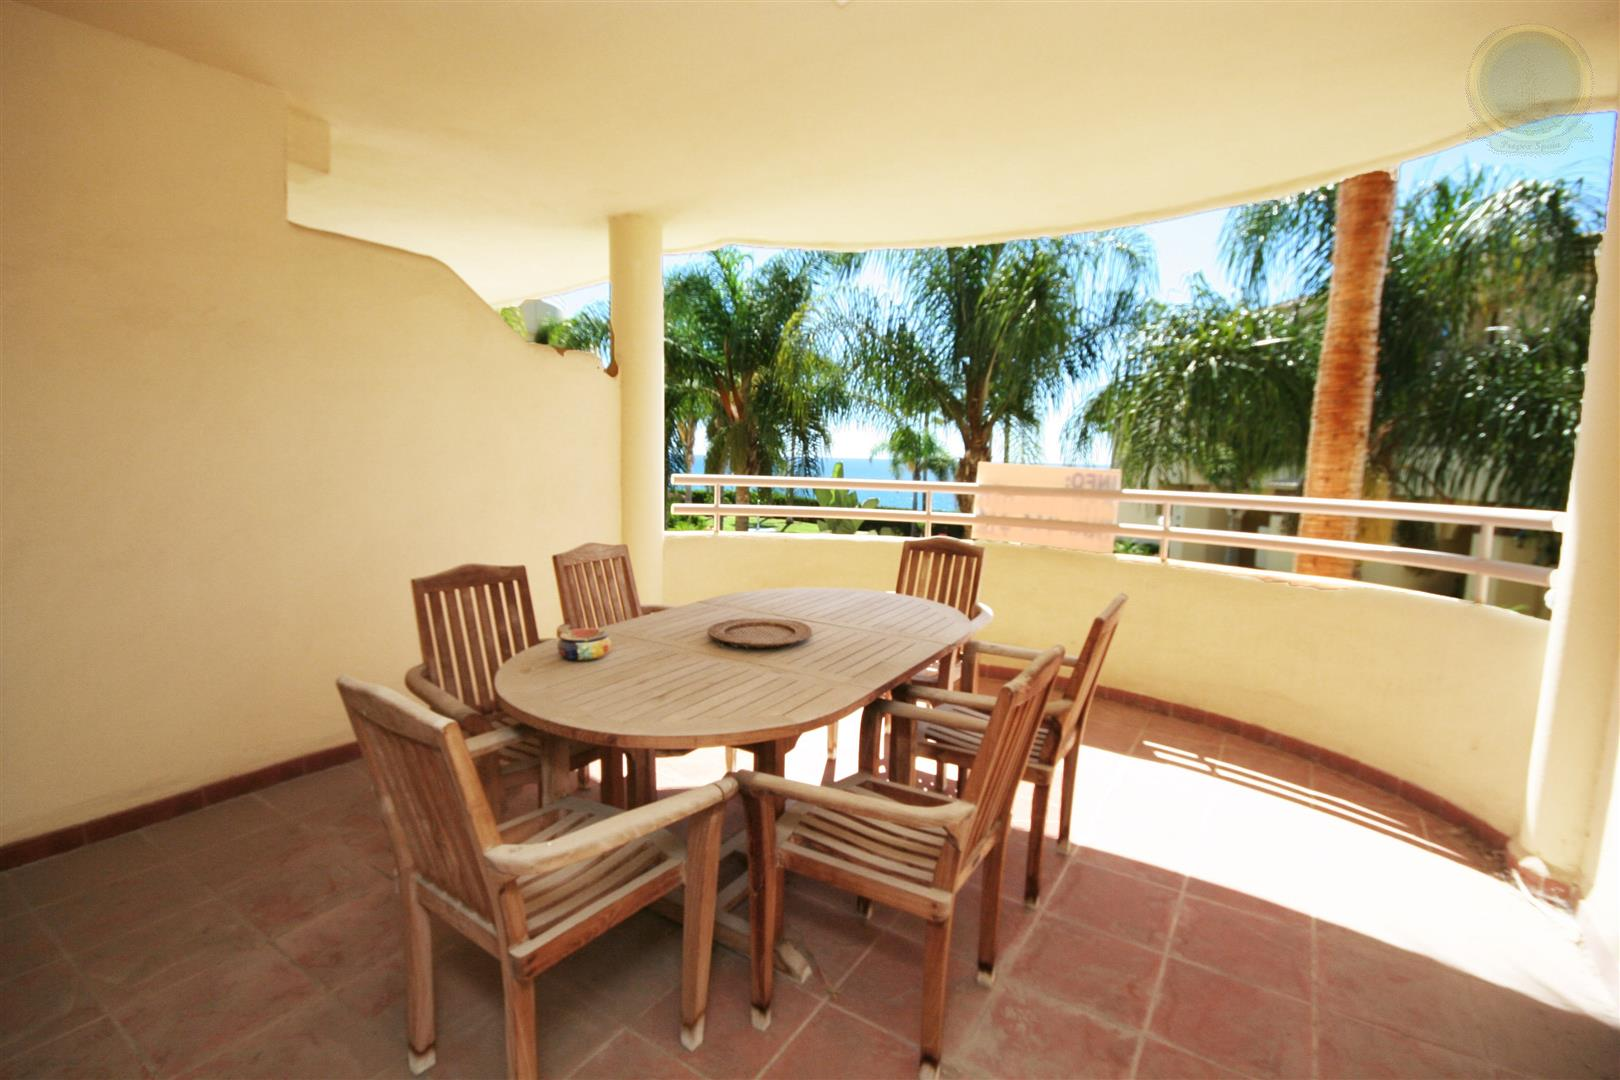 apartment for sale in Costaquebrada terrace